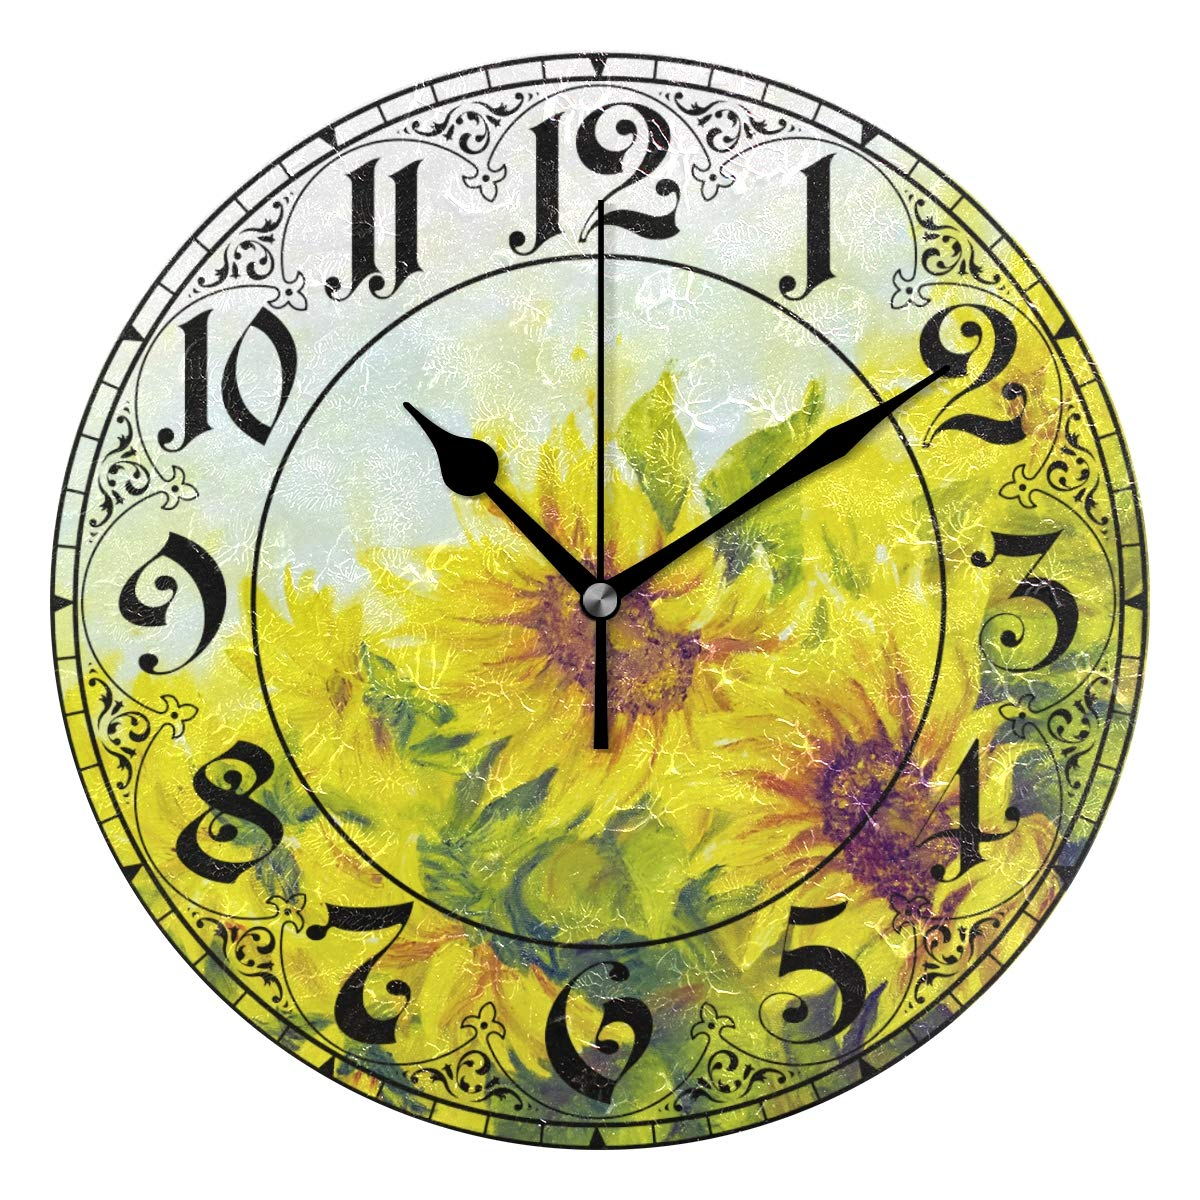 WellLee Sunny Sunflowers Painting Clock Acrylic Painted Silent Non-Ticking Round Wall Clock Home Art Bedroom Living Dorm Room Decor